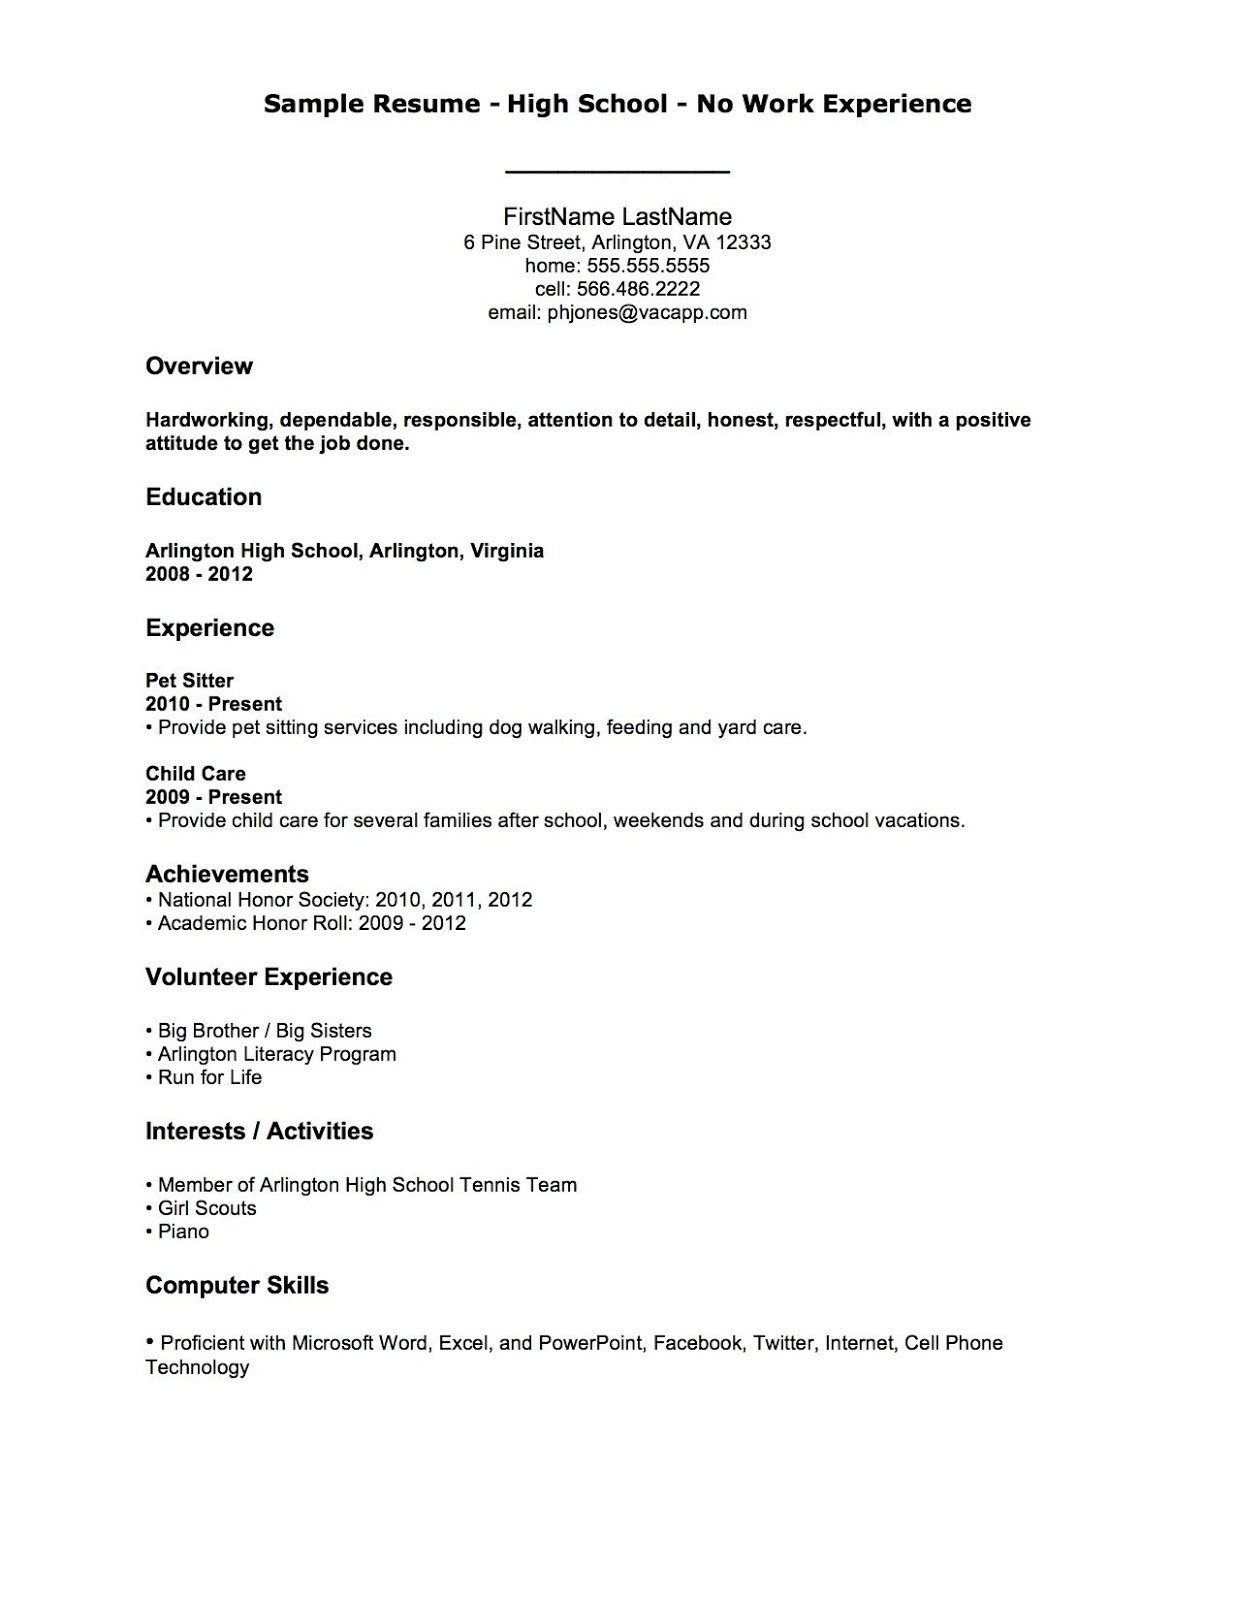 hvac r resume objective automotive technician resume sample - Hvac Resume Objective